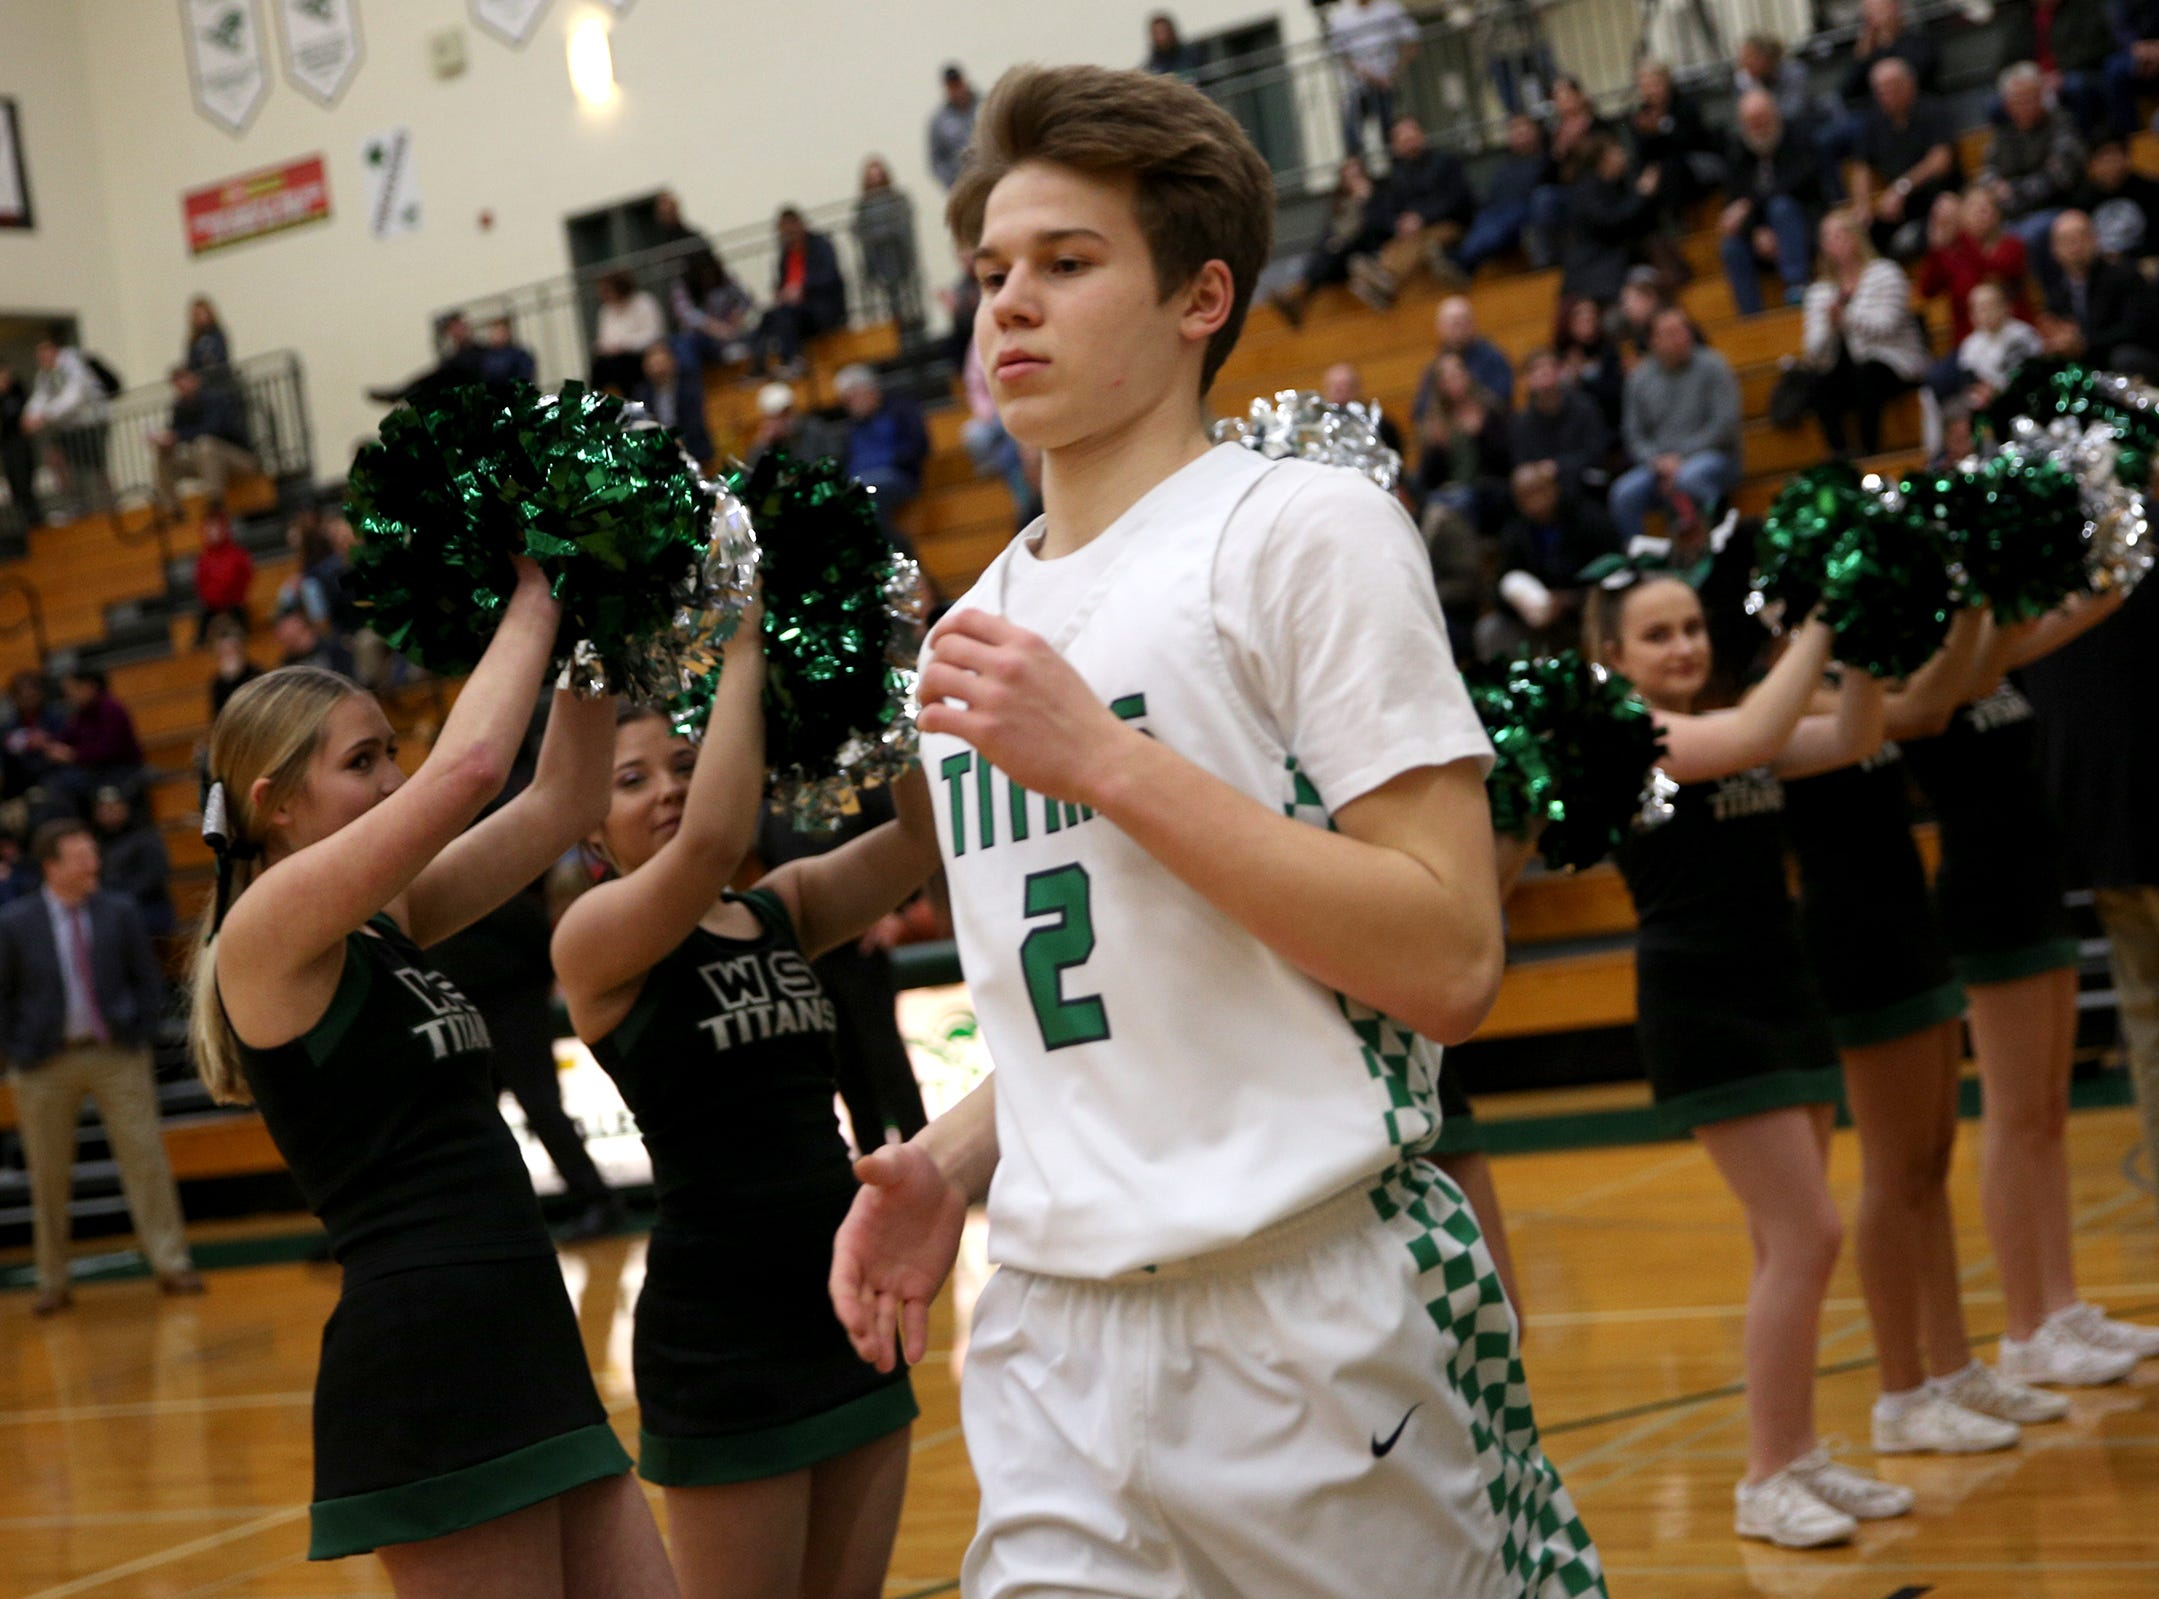 West Salem's Roman Ganchenko (2) ia introduced in the starting lineup before the West Salem vs. Westview 6A Boys Basketball State Championships first round at West Salem High School in Salem on Tuesday, Feb. 26, 2019.